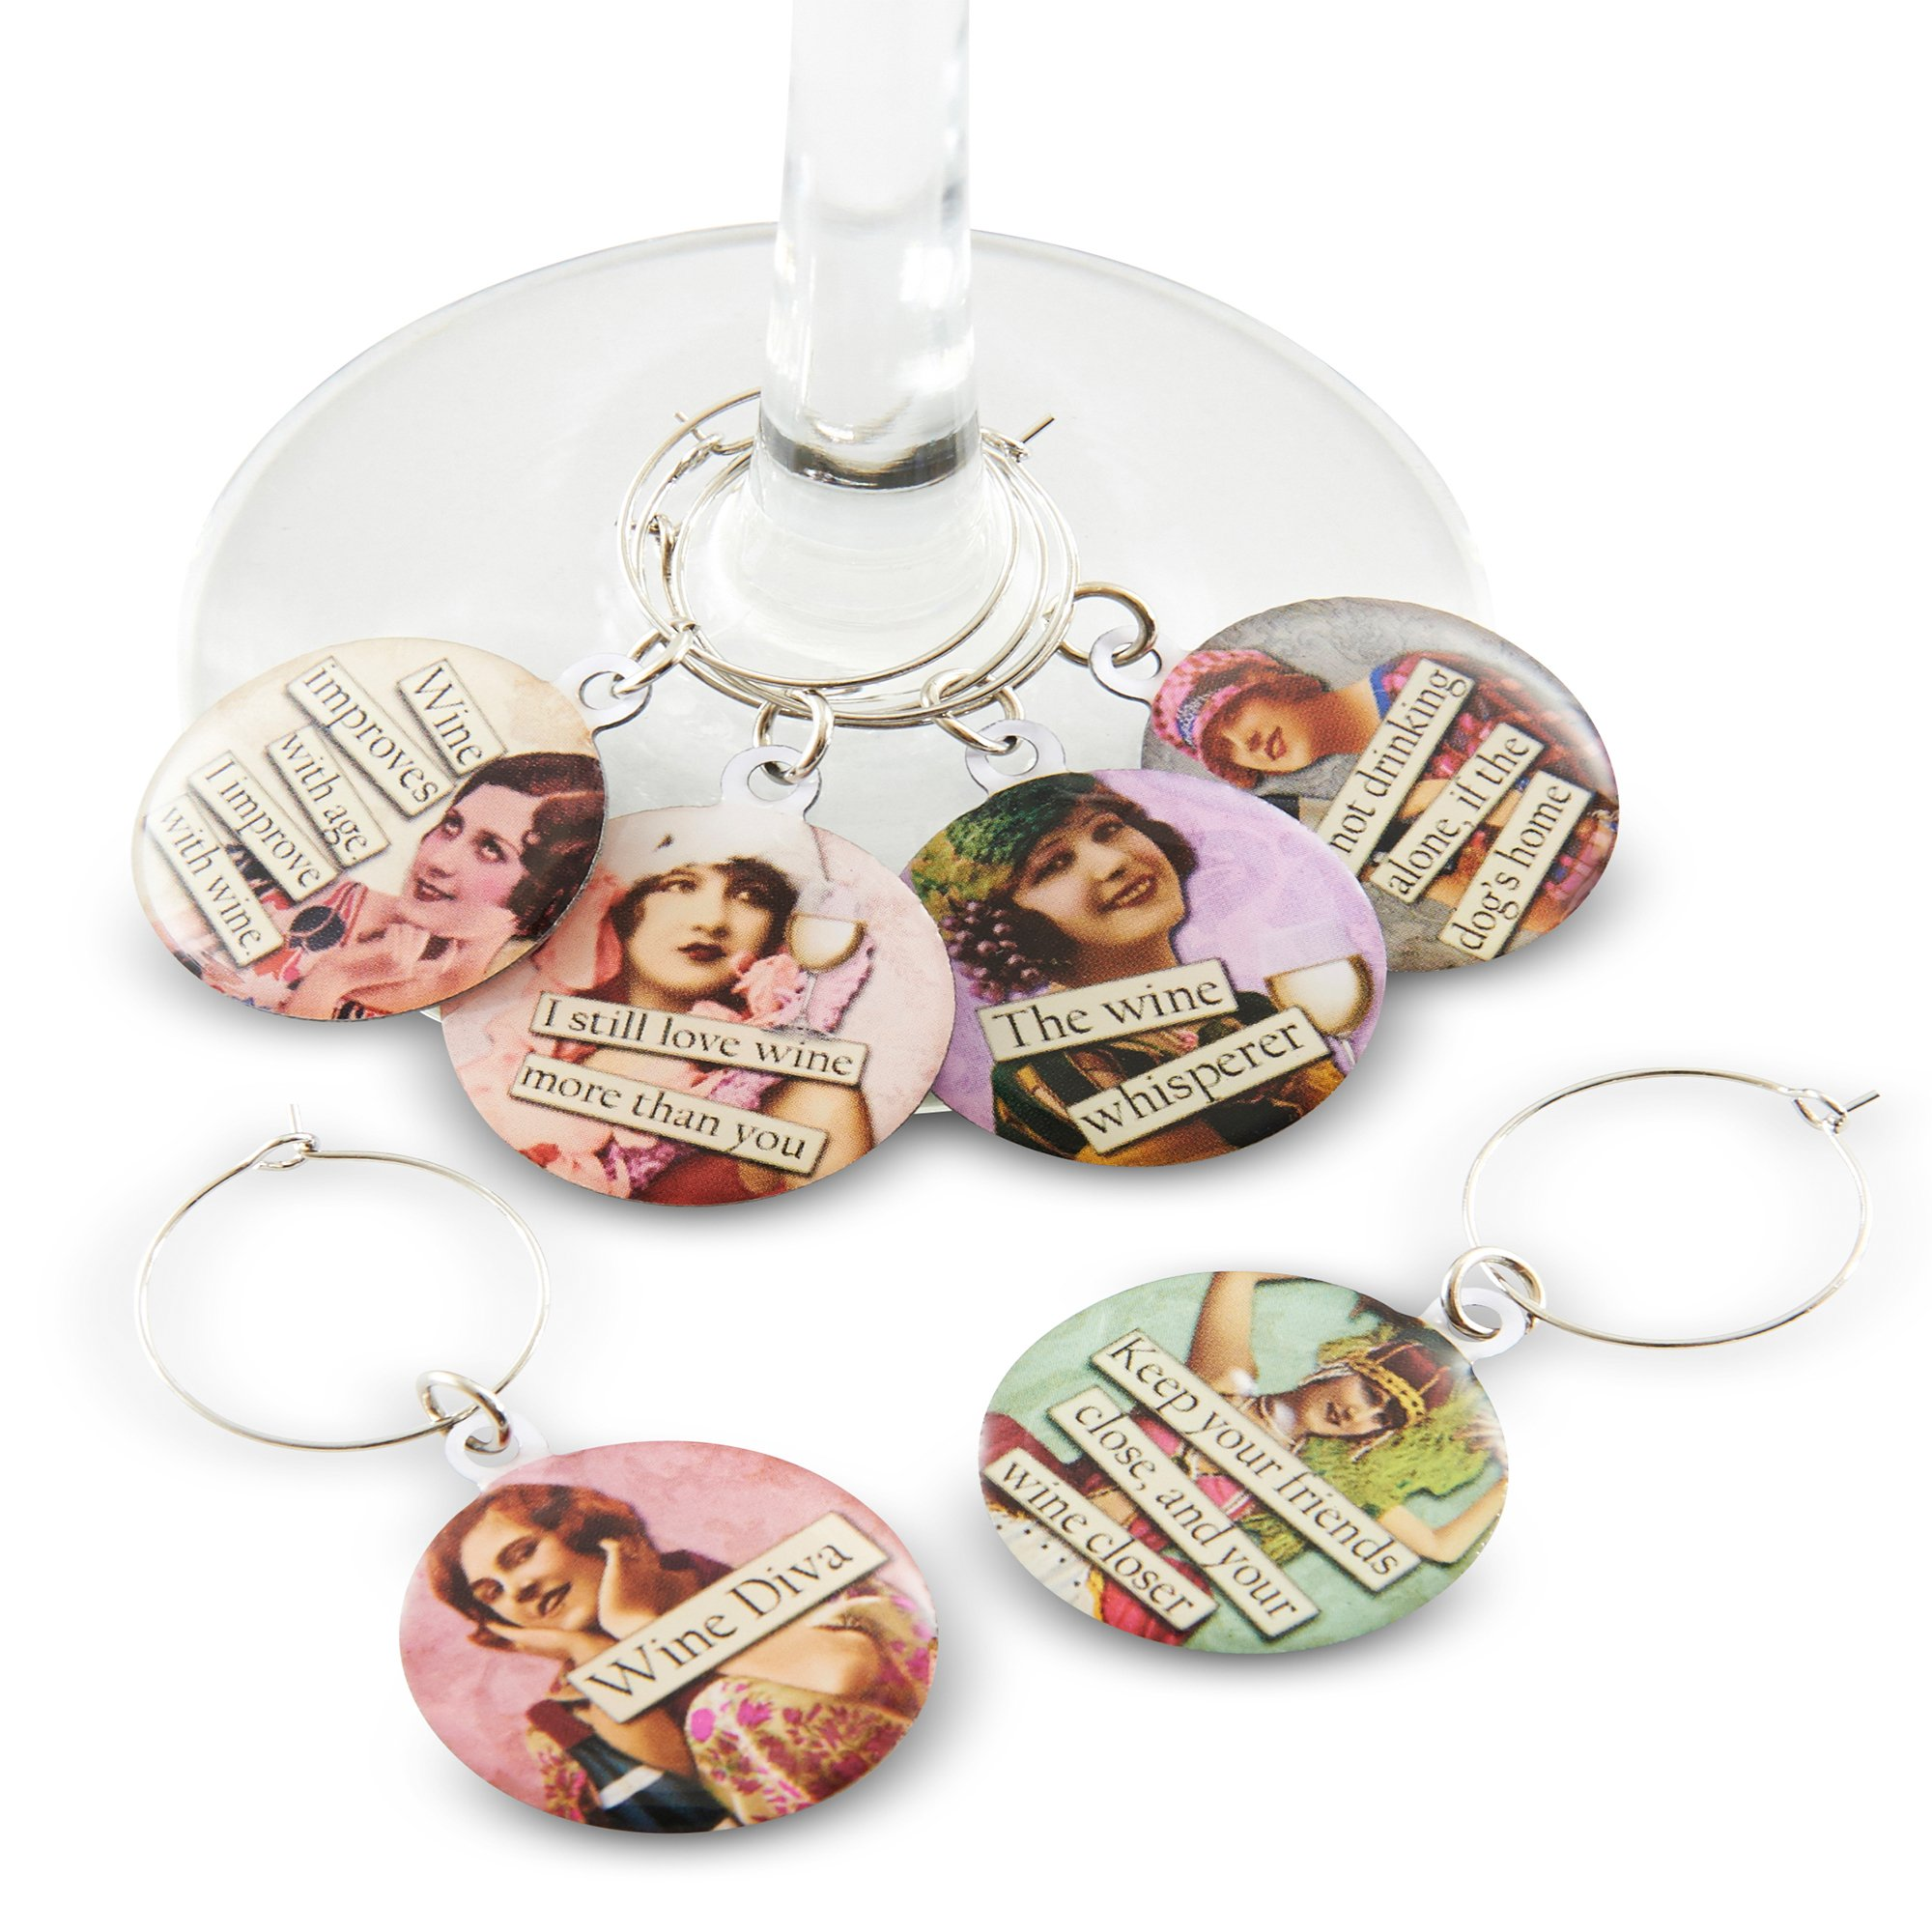 Funny Vintage Women Wine Glass Charms - Set of 6 Wine Glass Charms. Always know which glass is yours with these wine markers! by Savvy Design Store